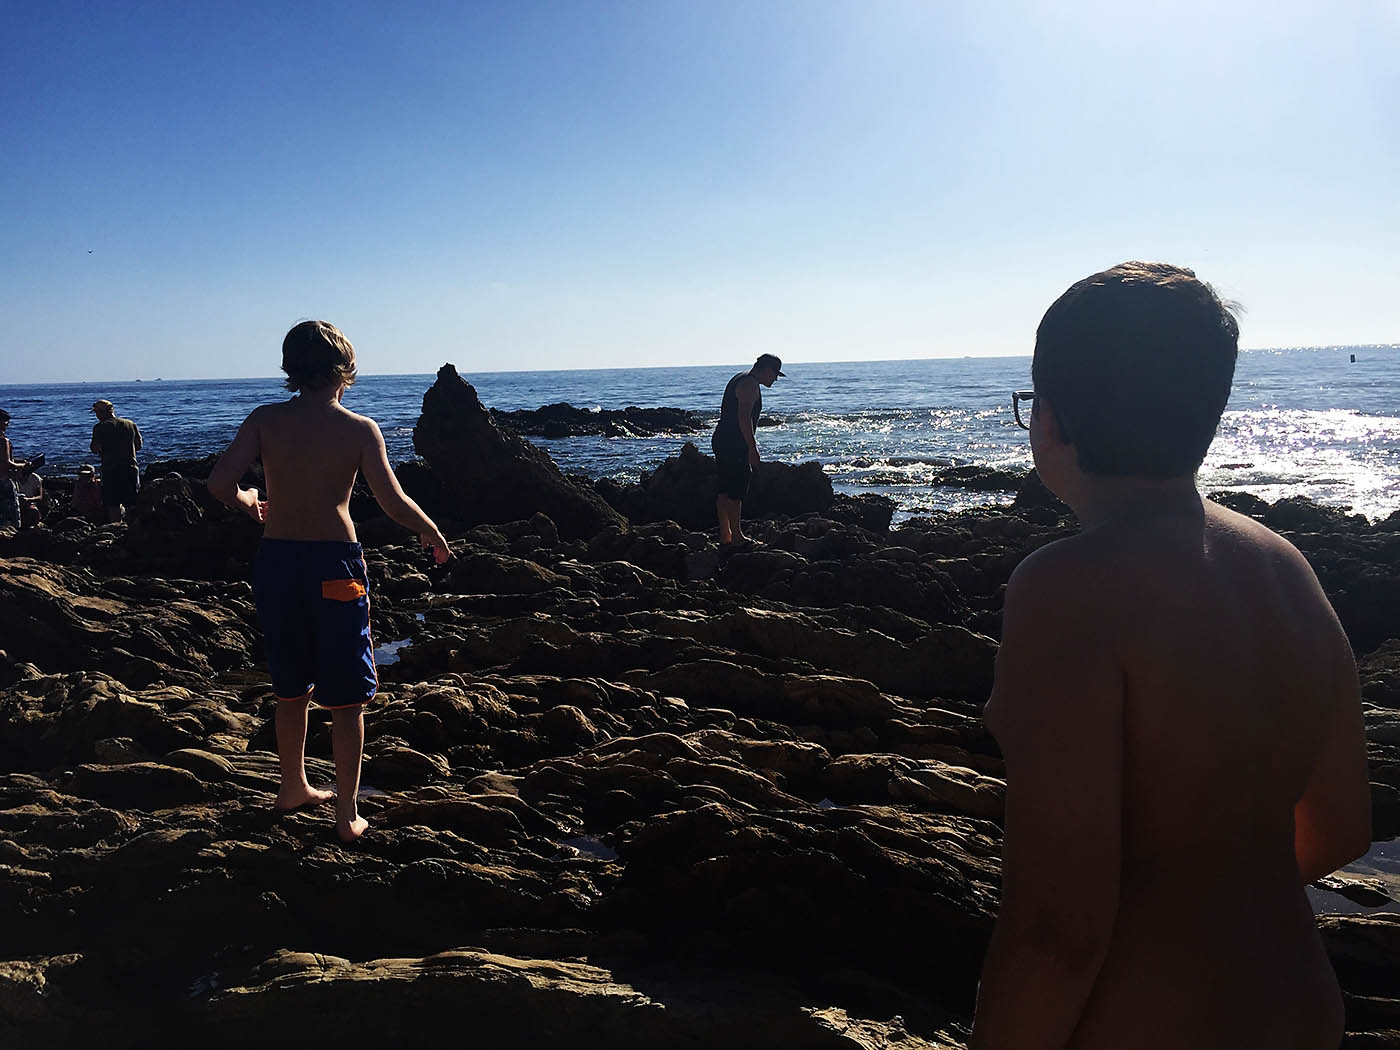 Tide pools at Little Corona Del Mar in southern California